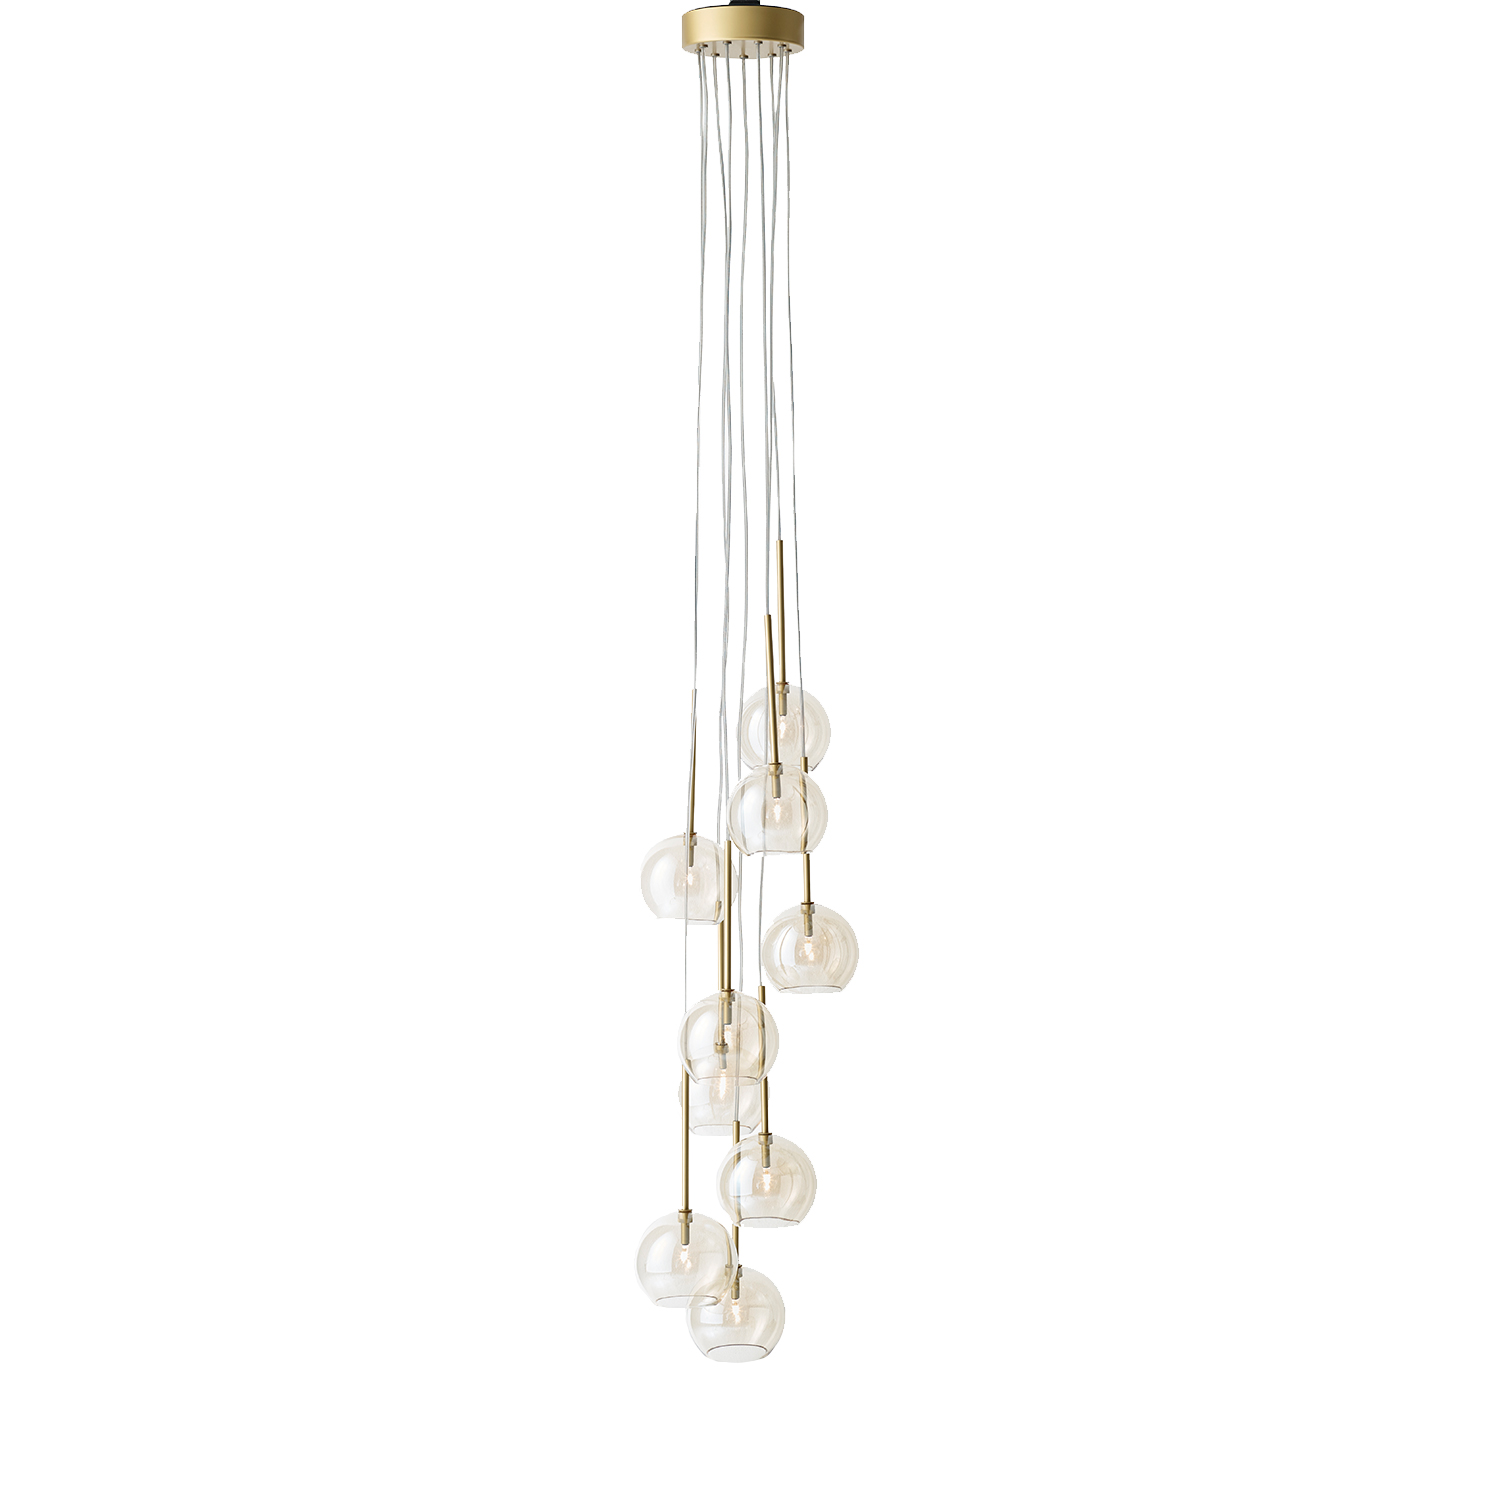 &Tradition-Ice Chandelier, Guld